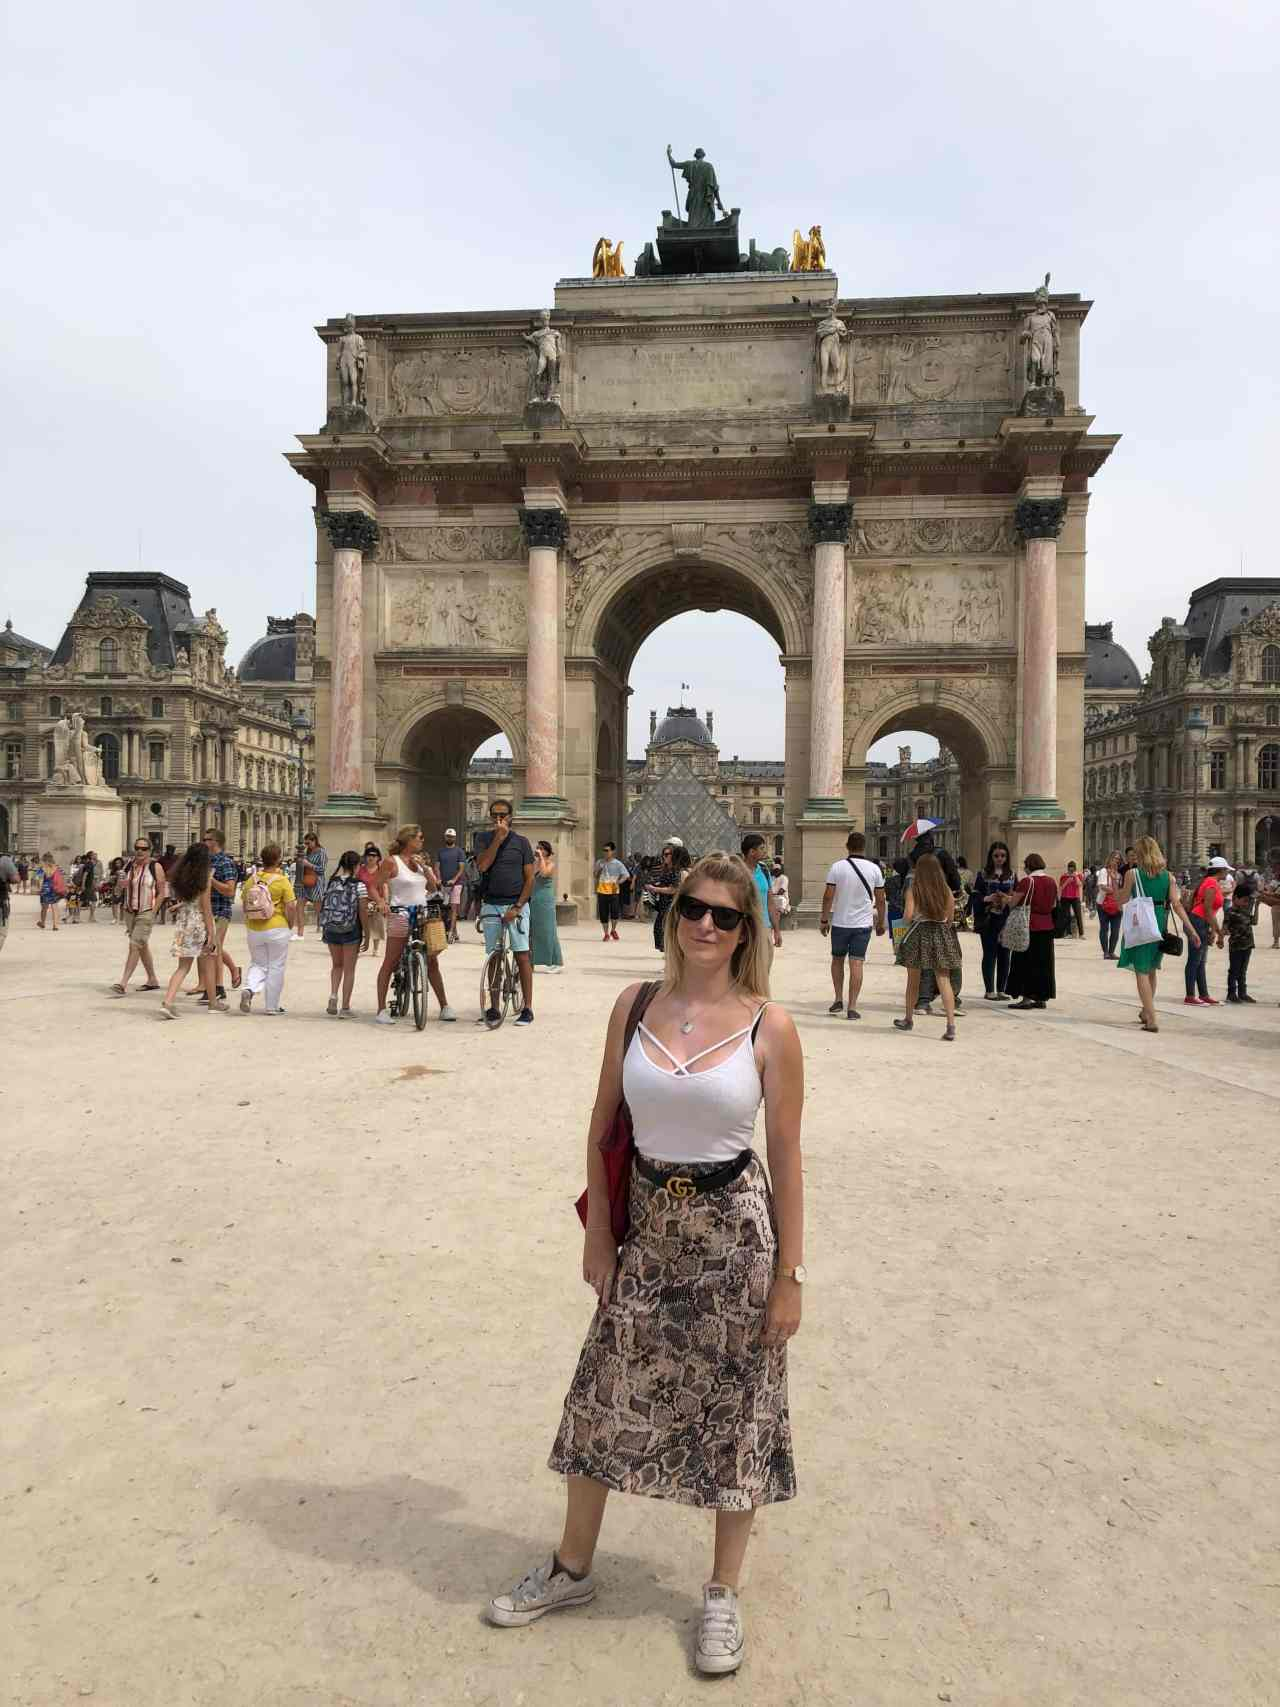 Archway by the Louvre Paris